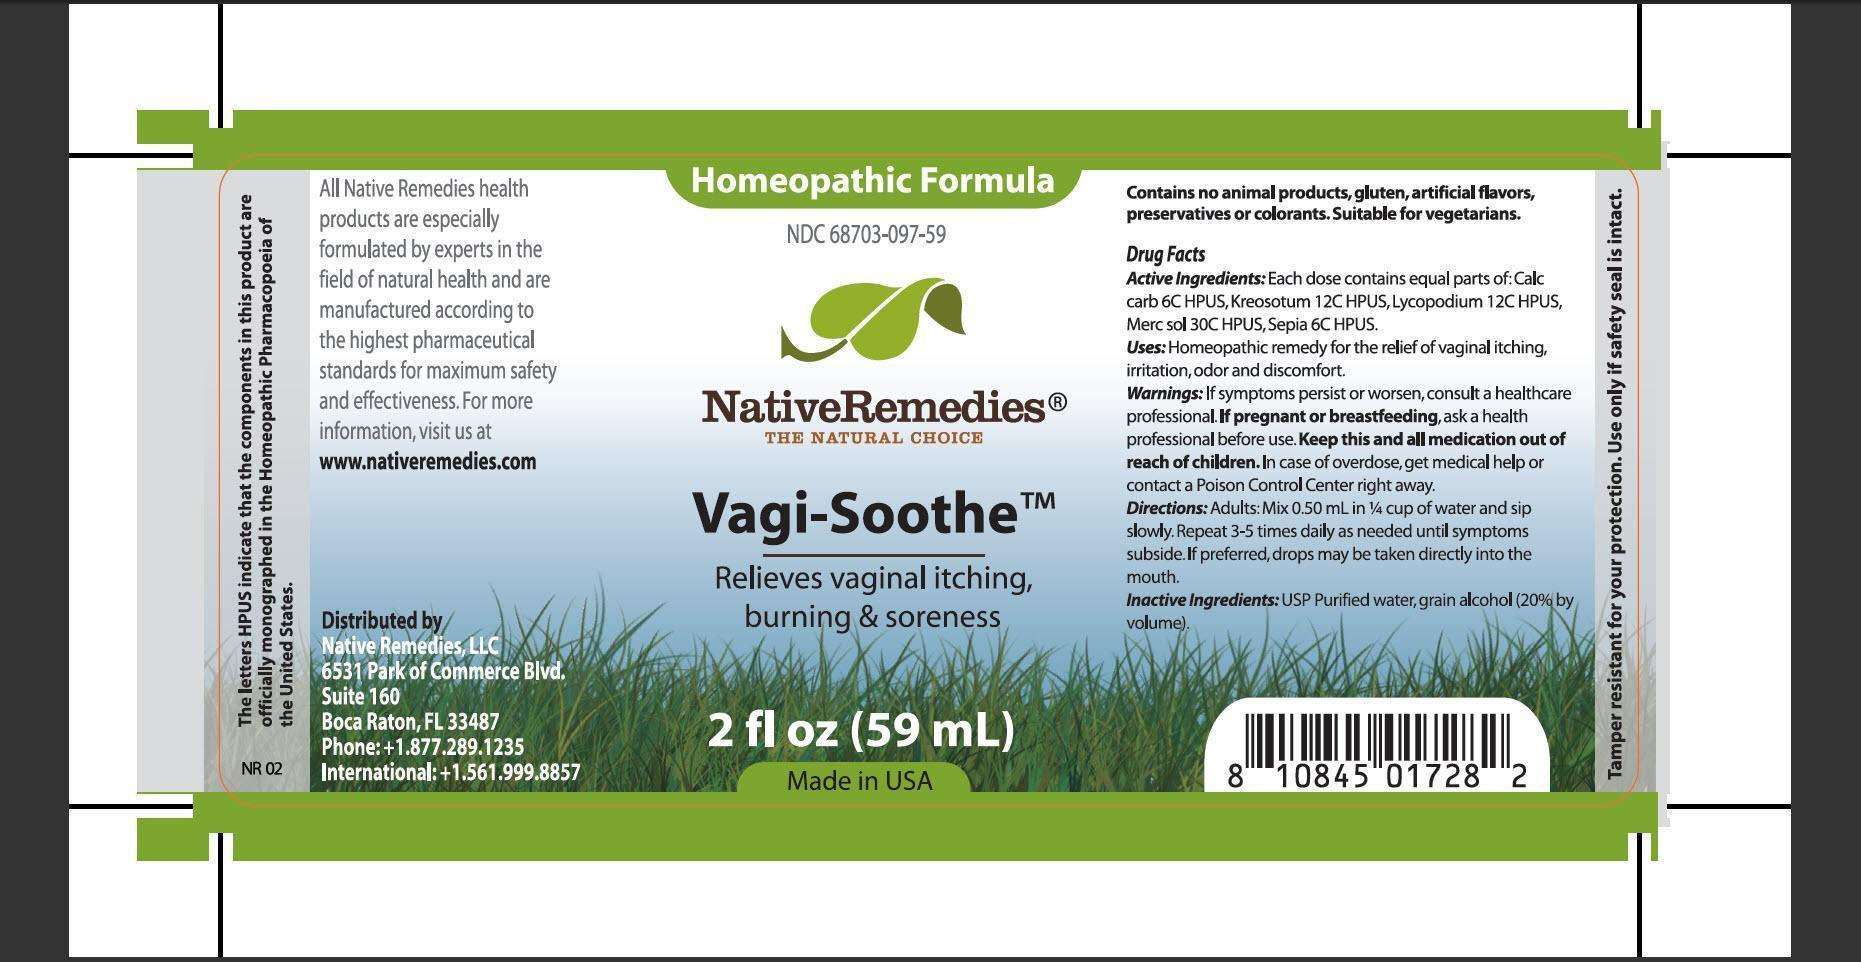 Vagi-soothe (Calc Carb, Kreosotum, Lycopodium, Merc Sol, Sepia) Tincture [Native Remedies, Llc]